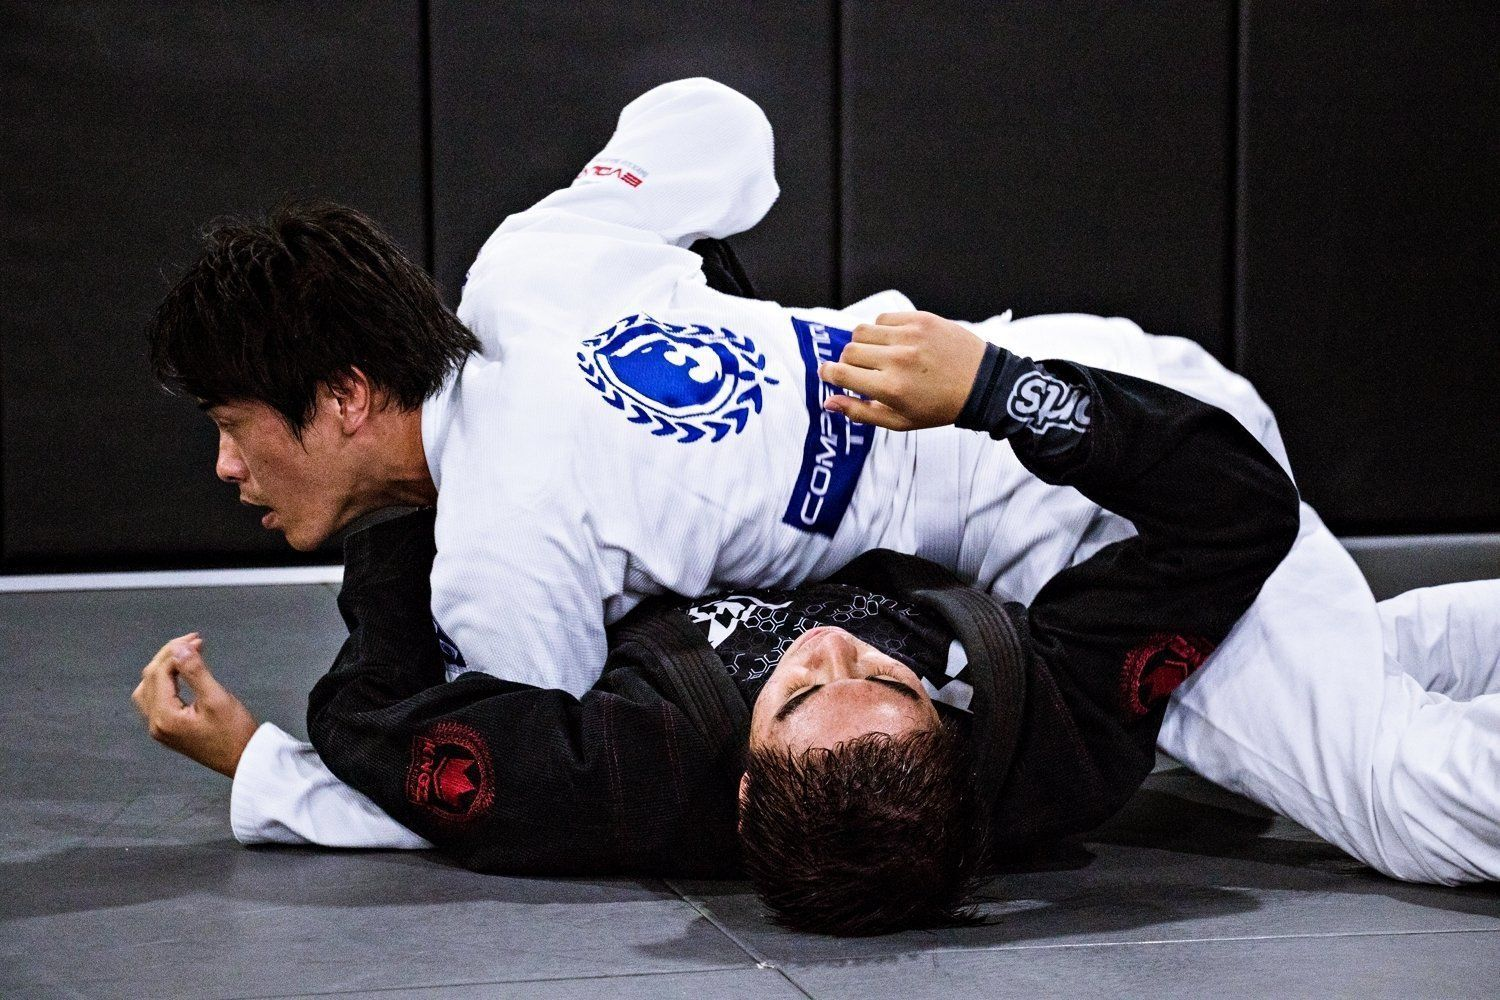 How To Be An Awesome White Belt - Evolve Daily